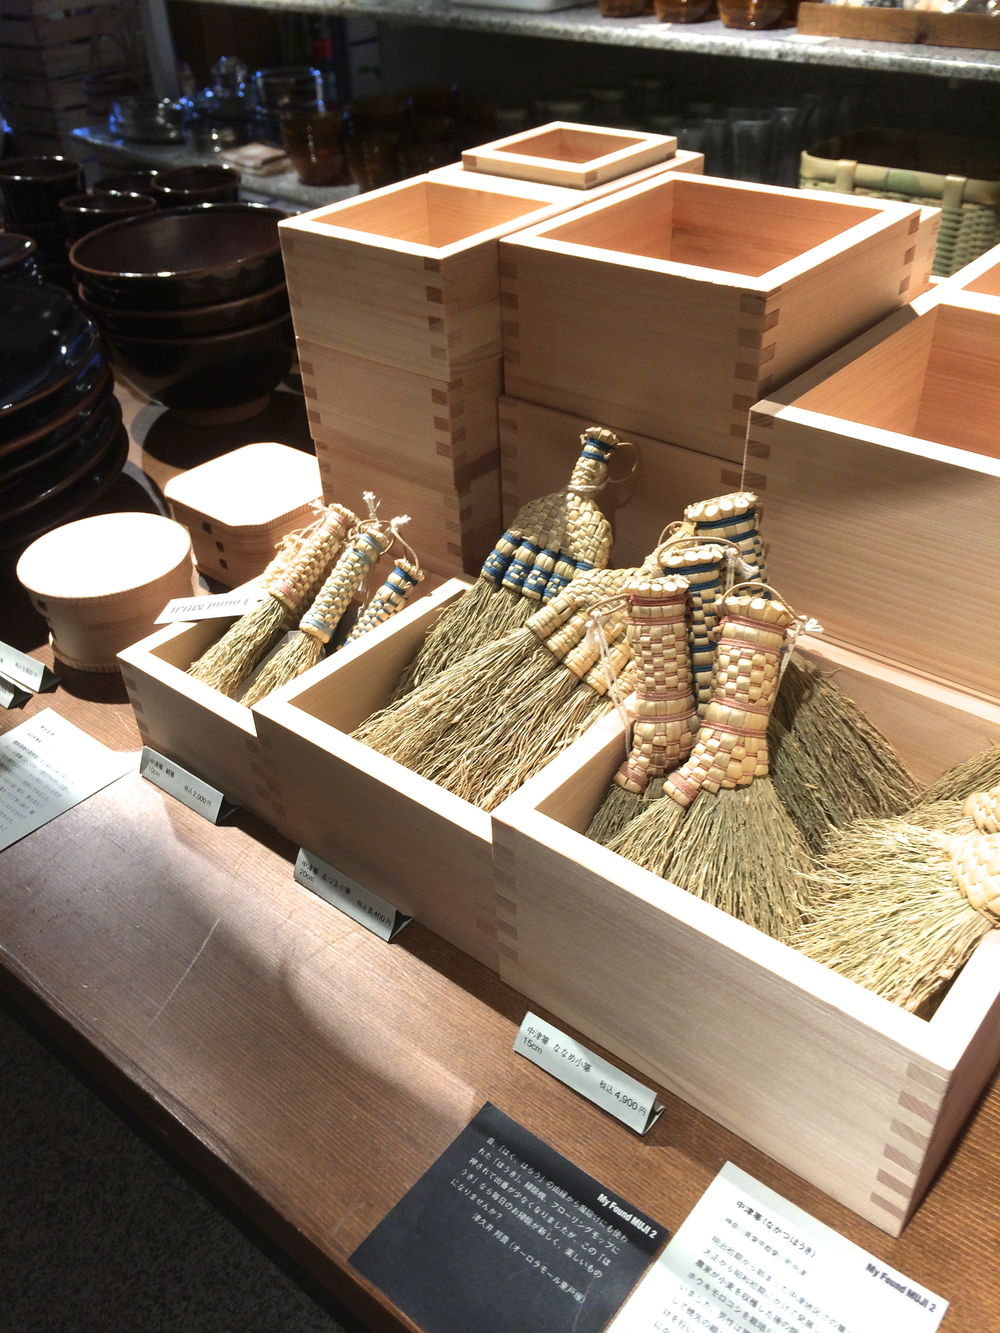 tiny brooms and wooden containers.